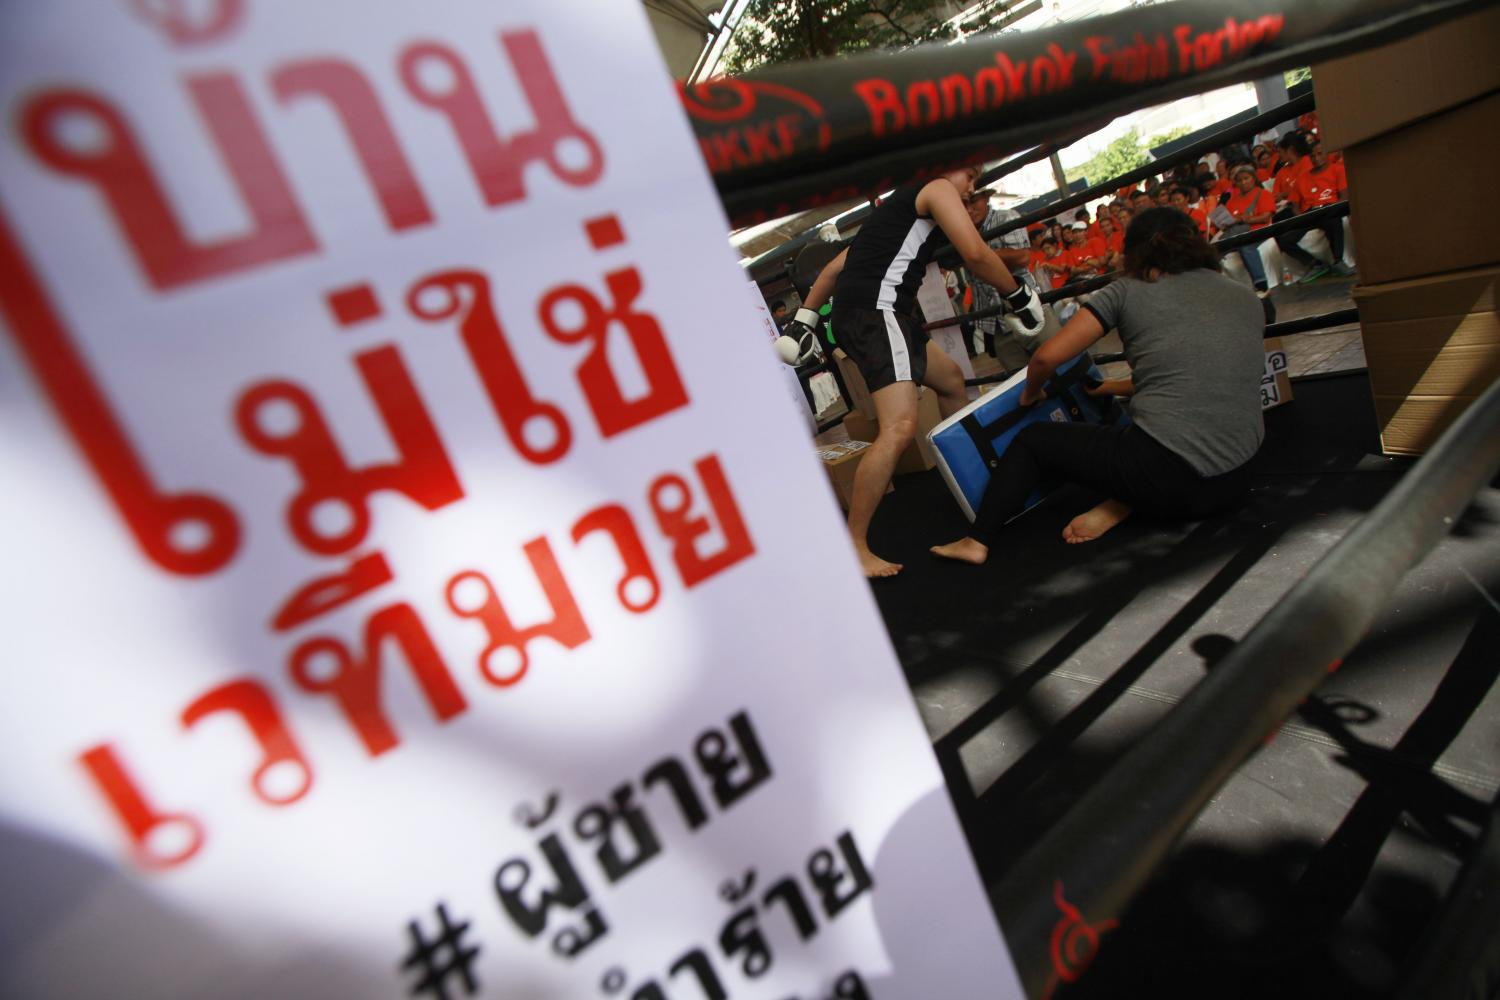 Activists conduct a campaign against domestic violence in Bangkok. (Photo by Pornprom Satrabhaya)